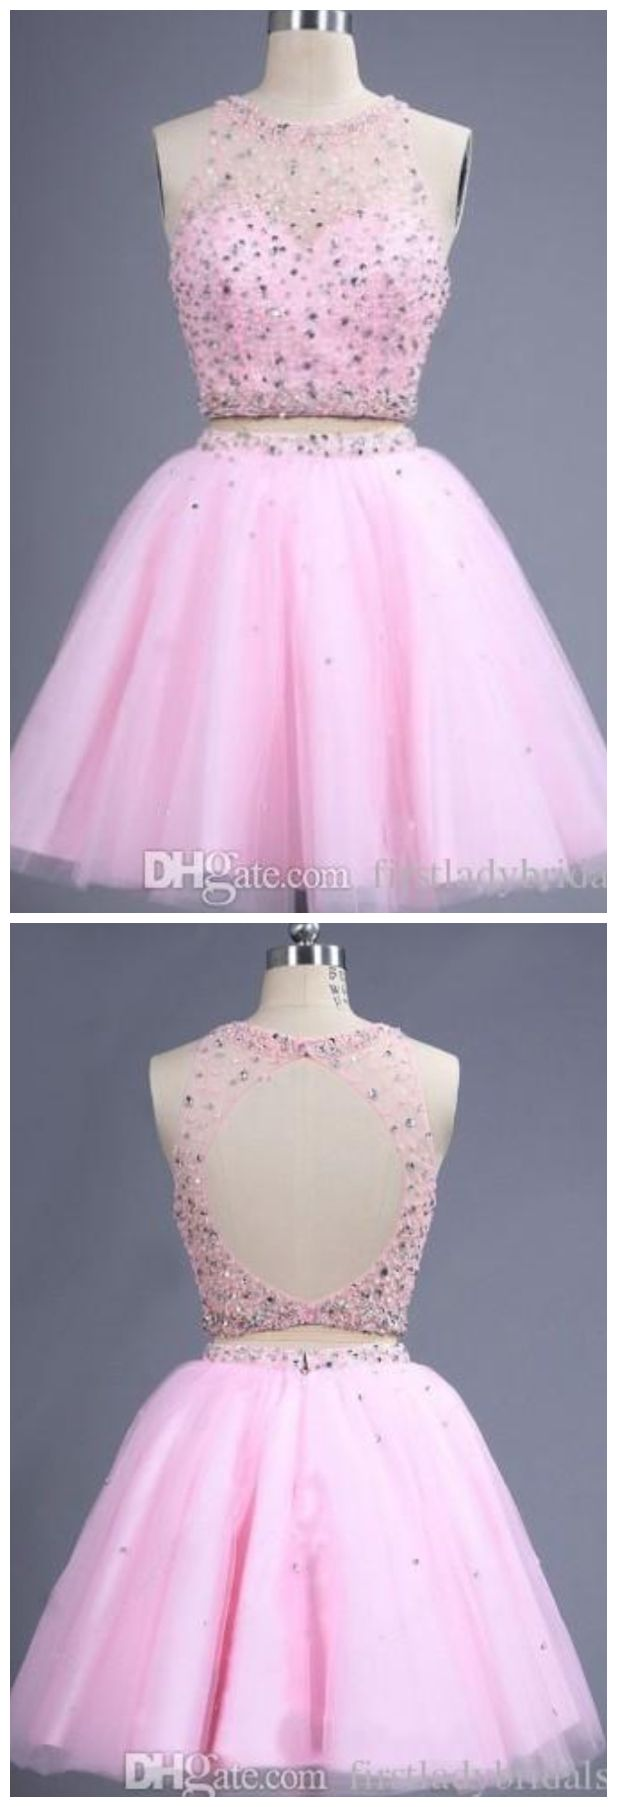 Short Homecoming Dresses Pink Real Photos Sheer Crew Neck Two Pieces Prom Gowns Backless Beaded Cocktail Party Dress Tulle Cheap